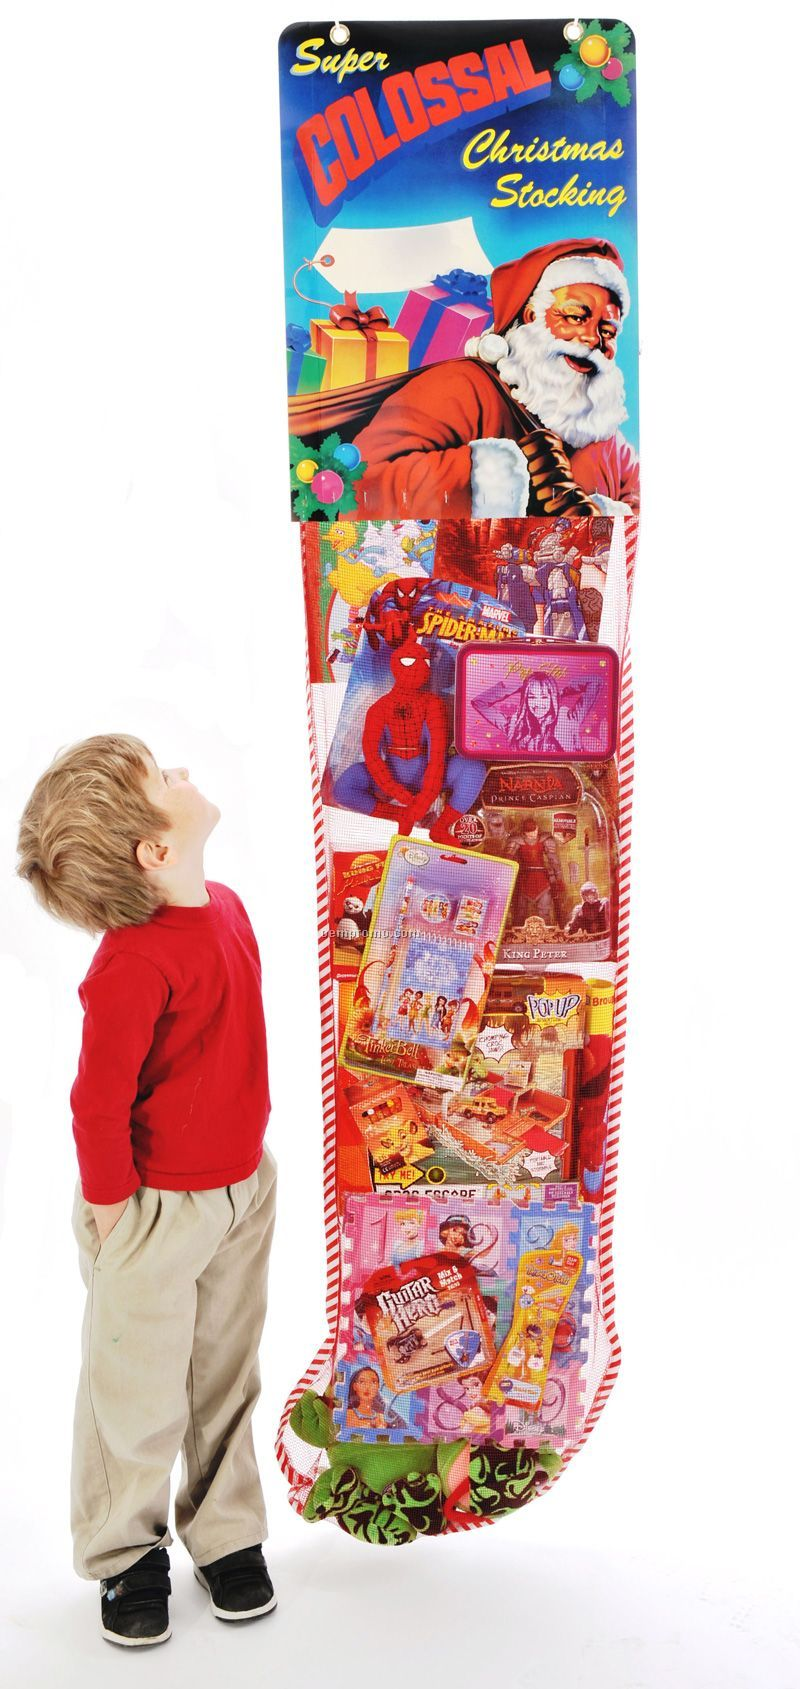 The World's Largest 6' Promotional Hanging Deluxe Christmas Stocking